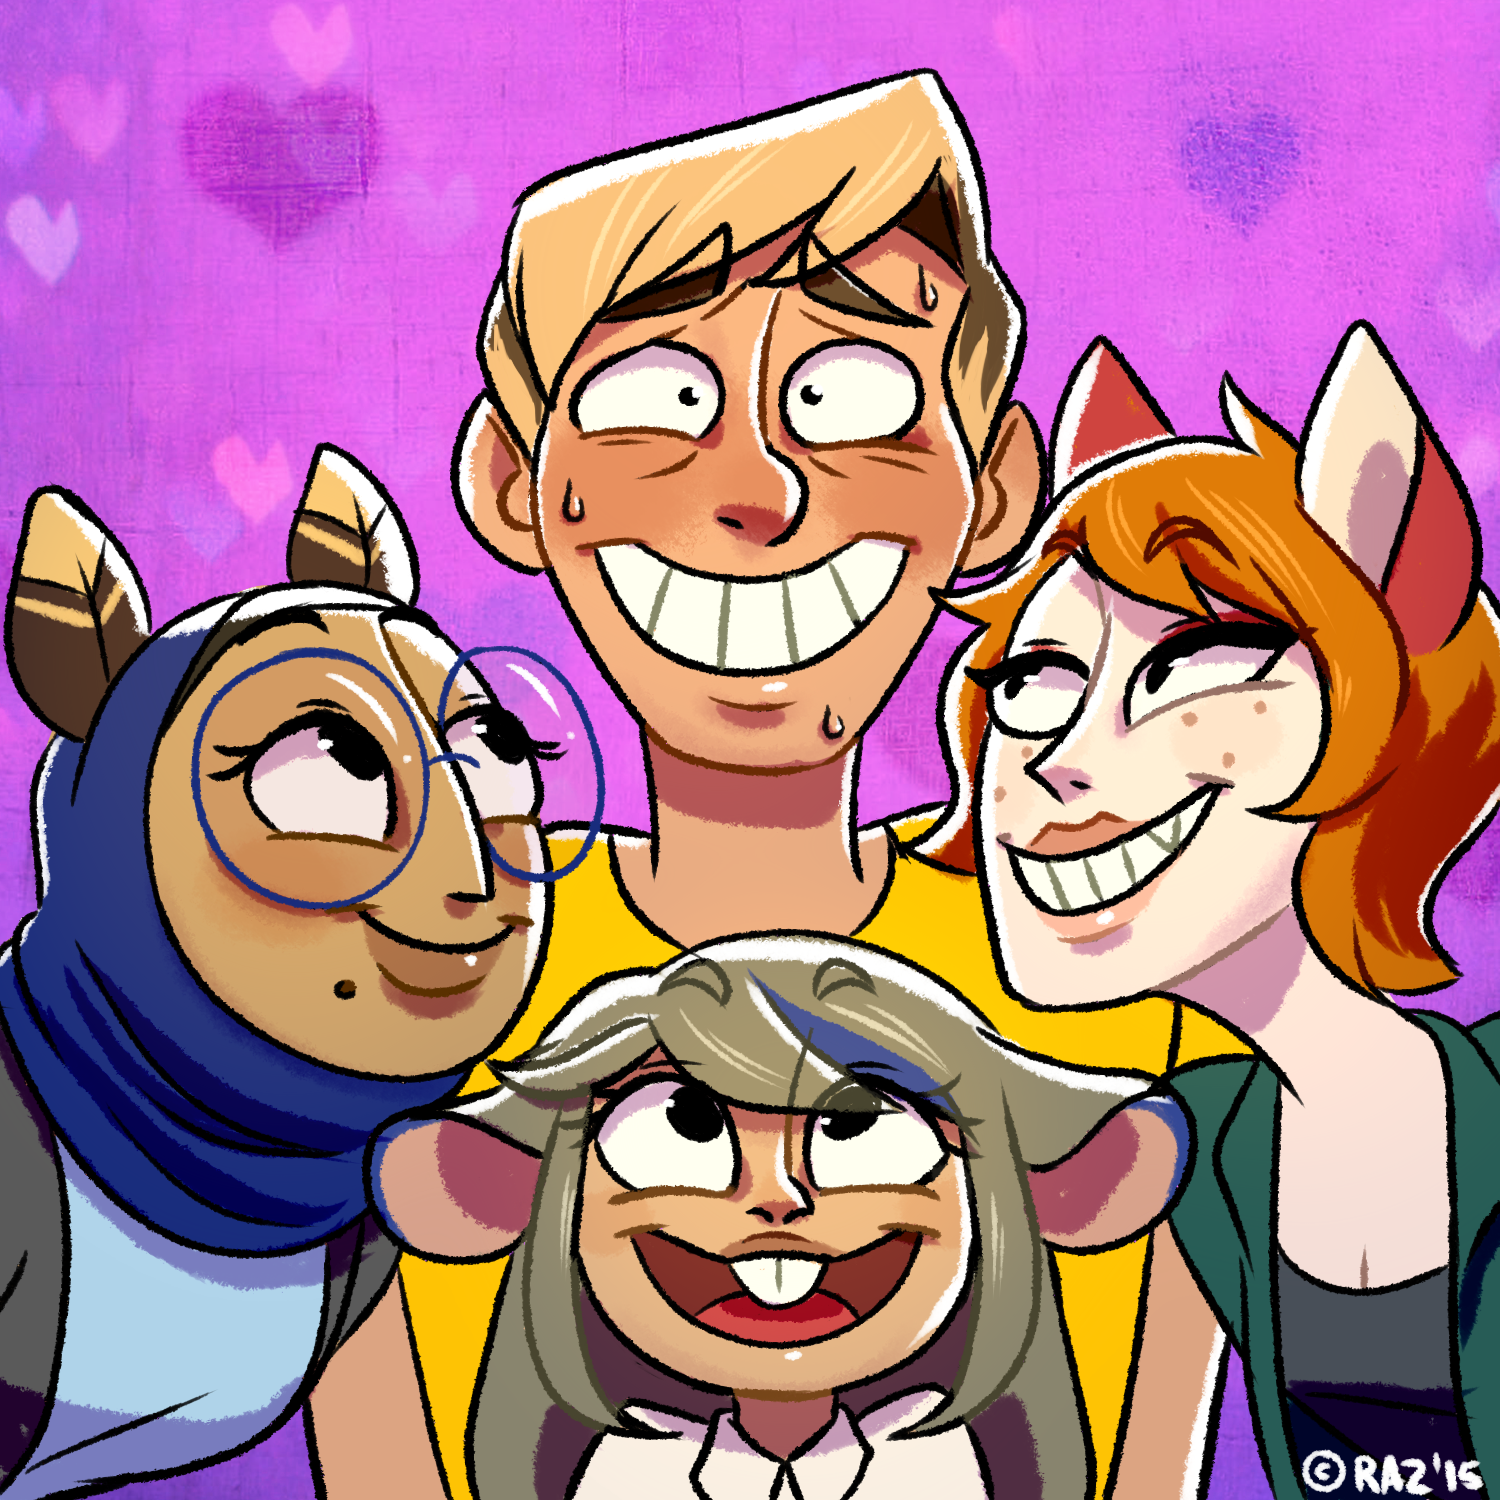 A Guy and His 3 Girlfriends